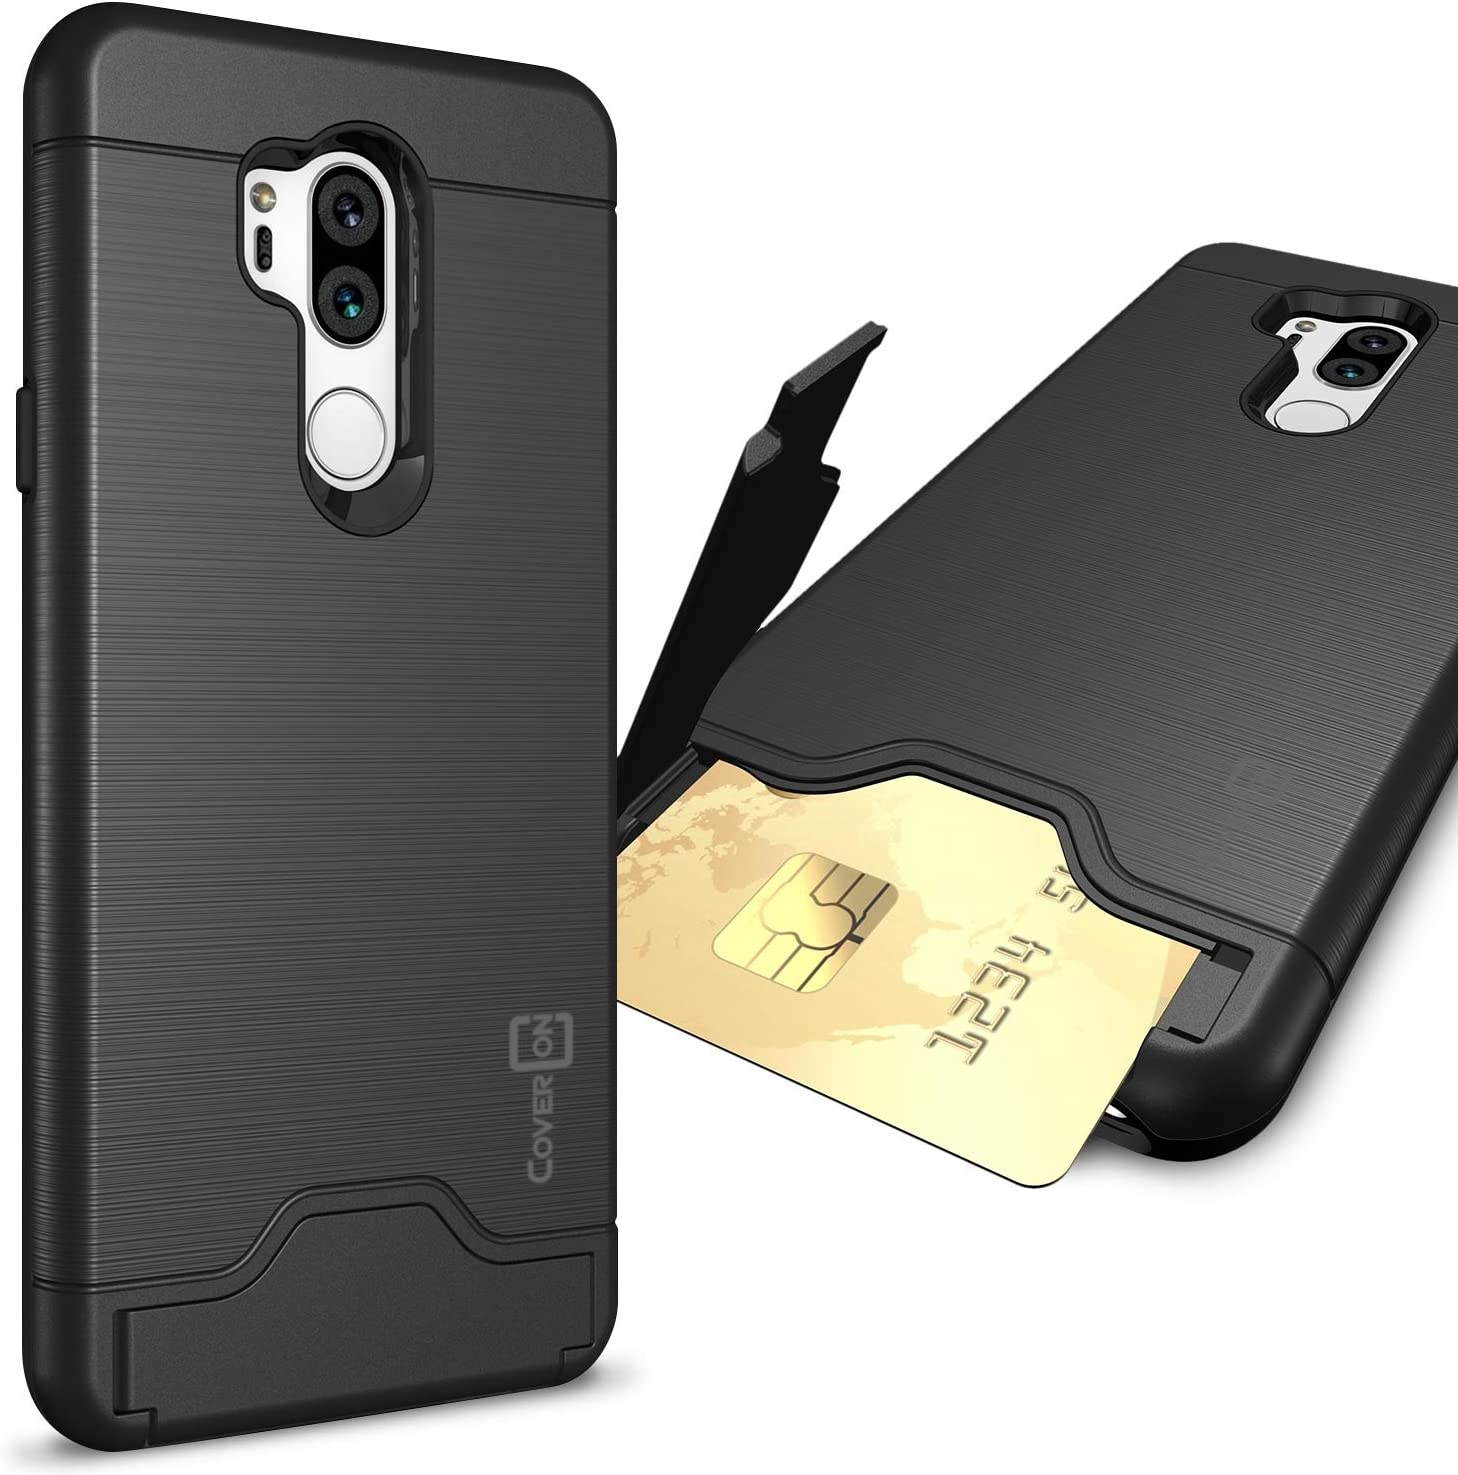 CoverON Credit Card Holder Protective SecureCard Series for LG G7 ThinQ Case, Black